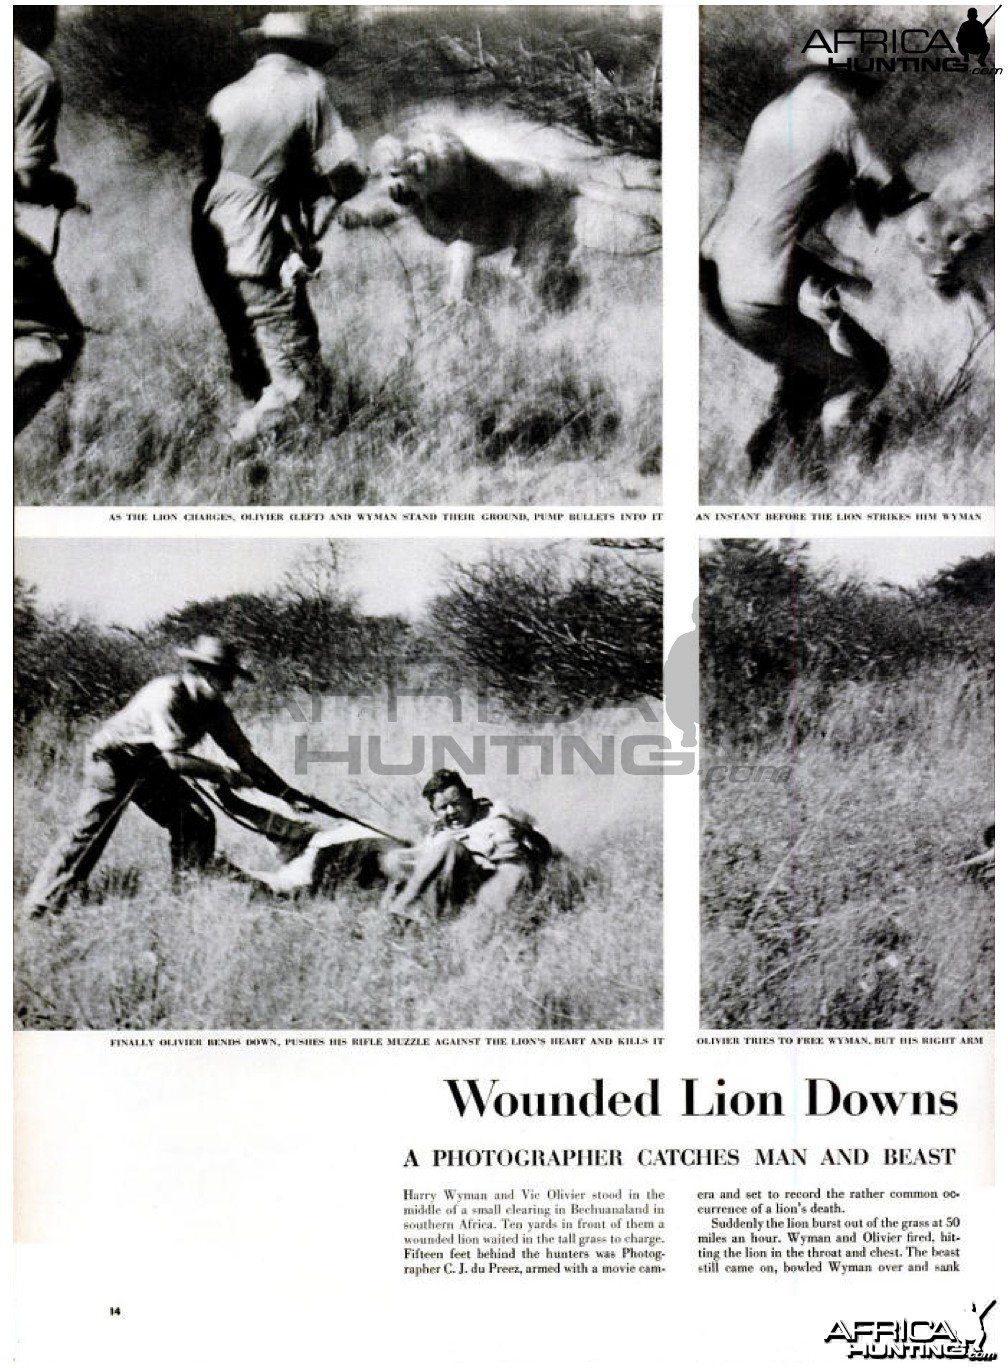 Wounded Lion Downs, 1955